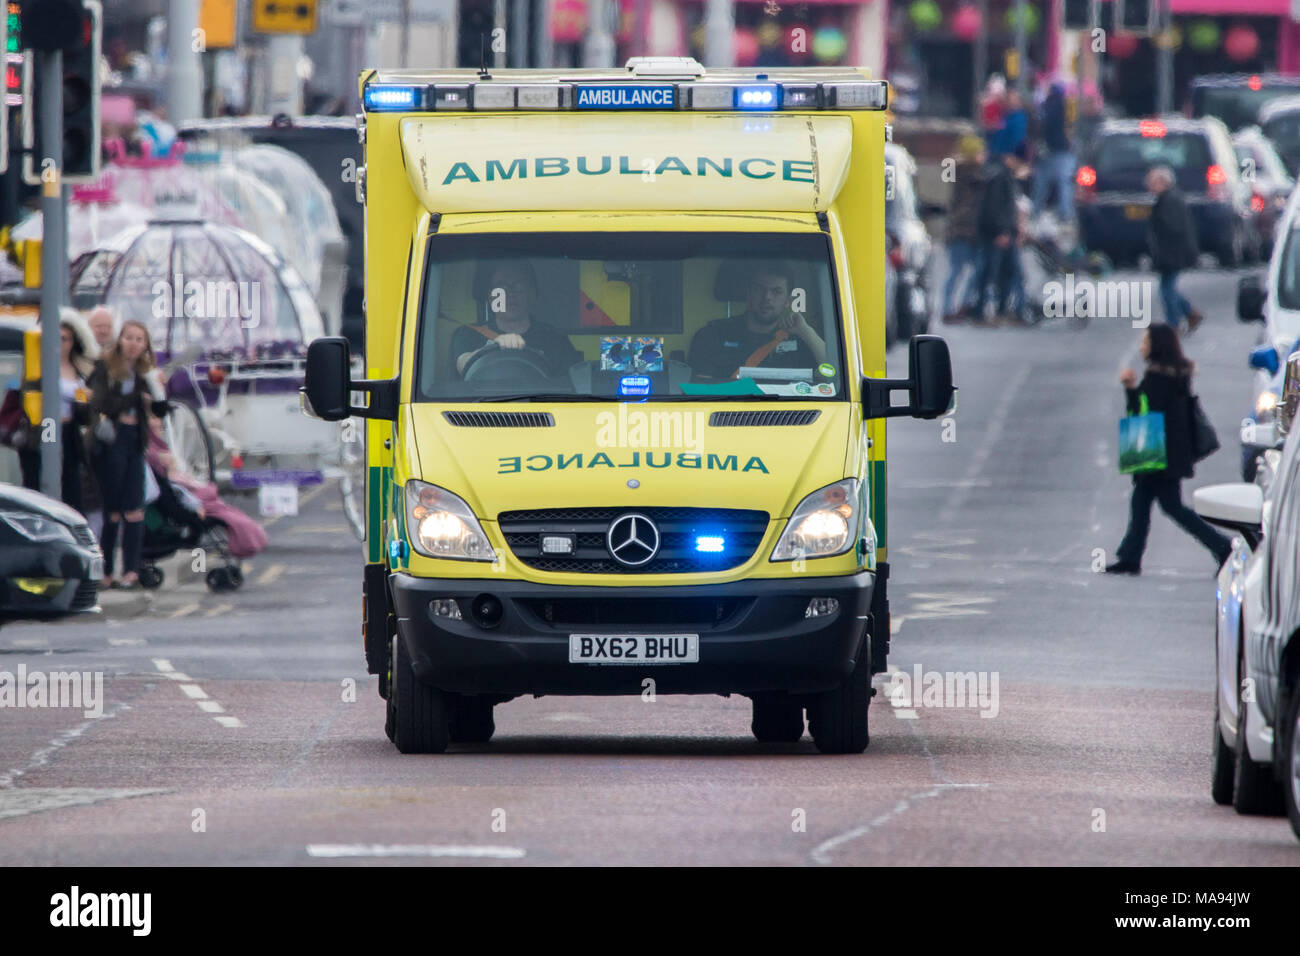 accident aid ambulance assistance medic medical medicine occupation paramedic paramedics danger doctor emergency ems urgency urgent vehicle - Stock Image